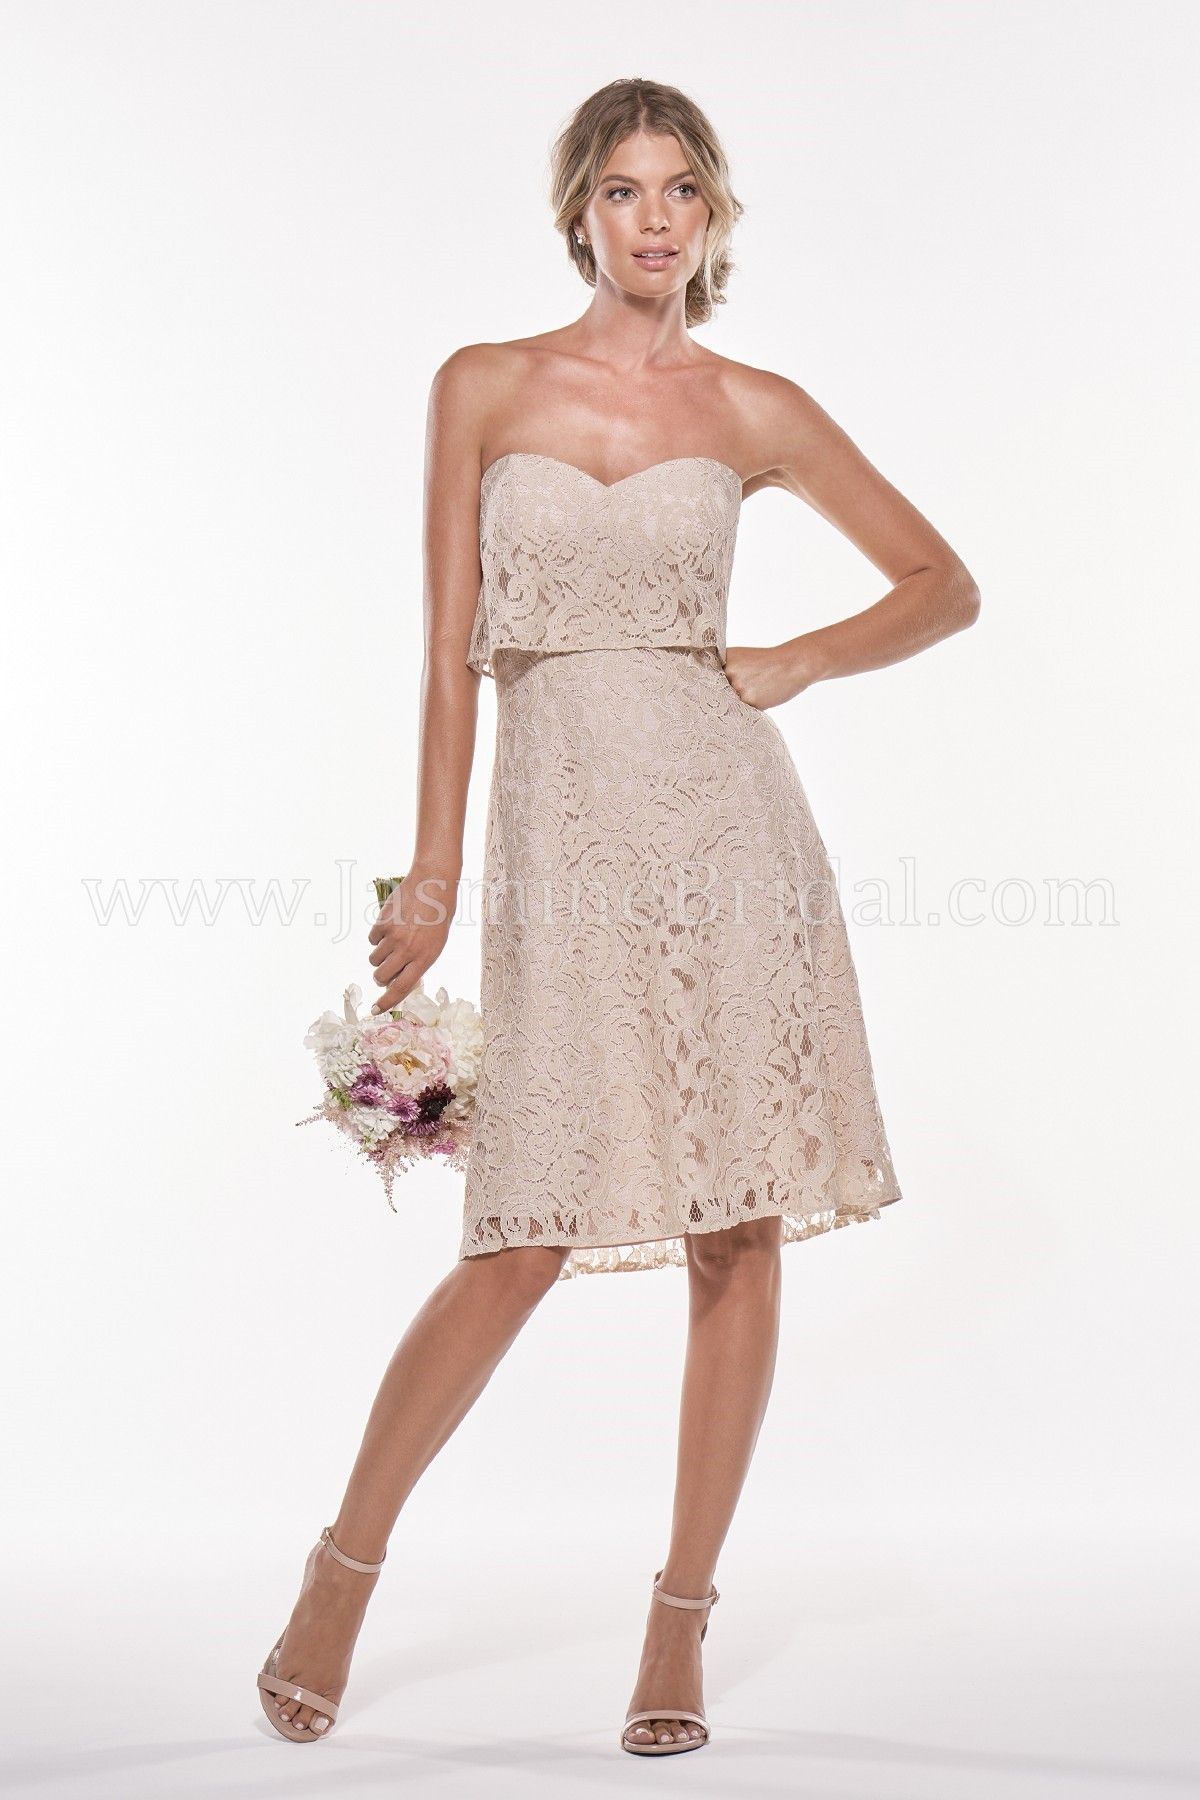 Jasmine Bridal - Jasmine Bridesmaids Style P196011K in Lace, color ...